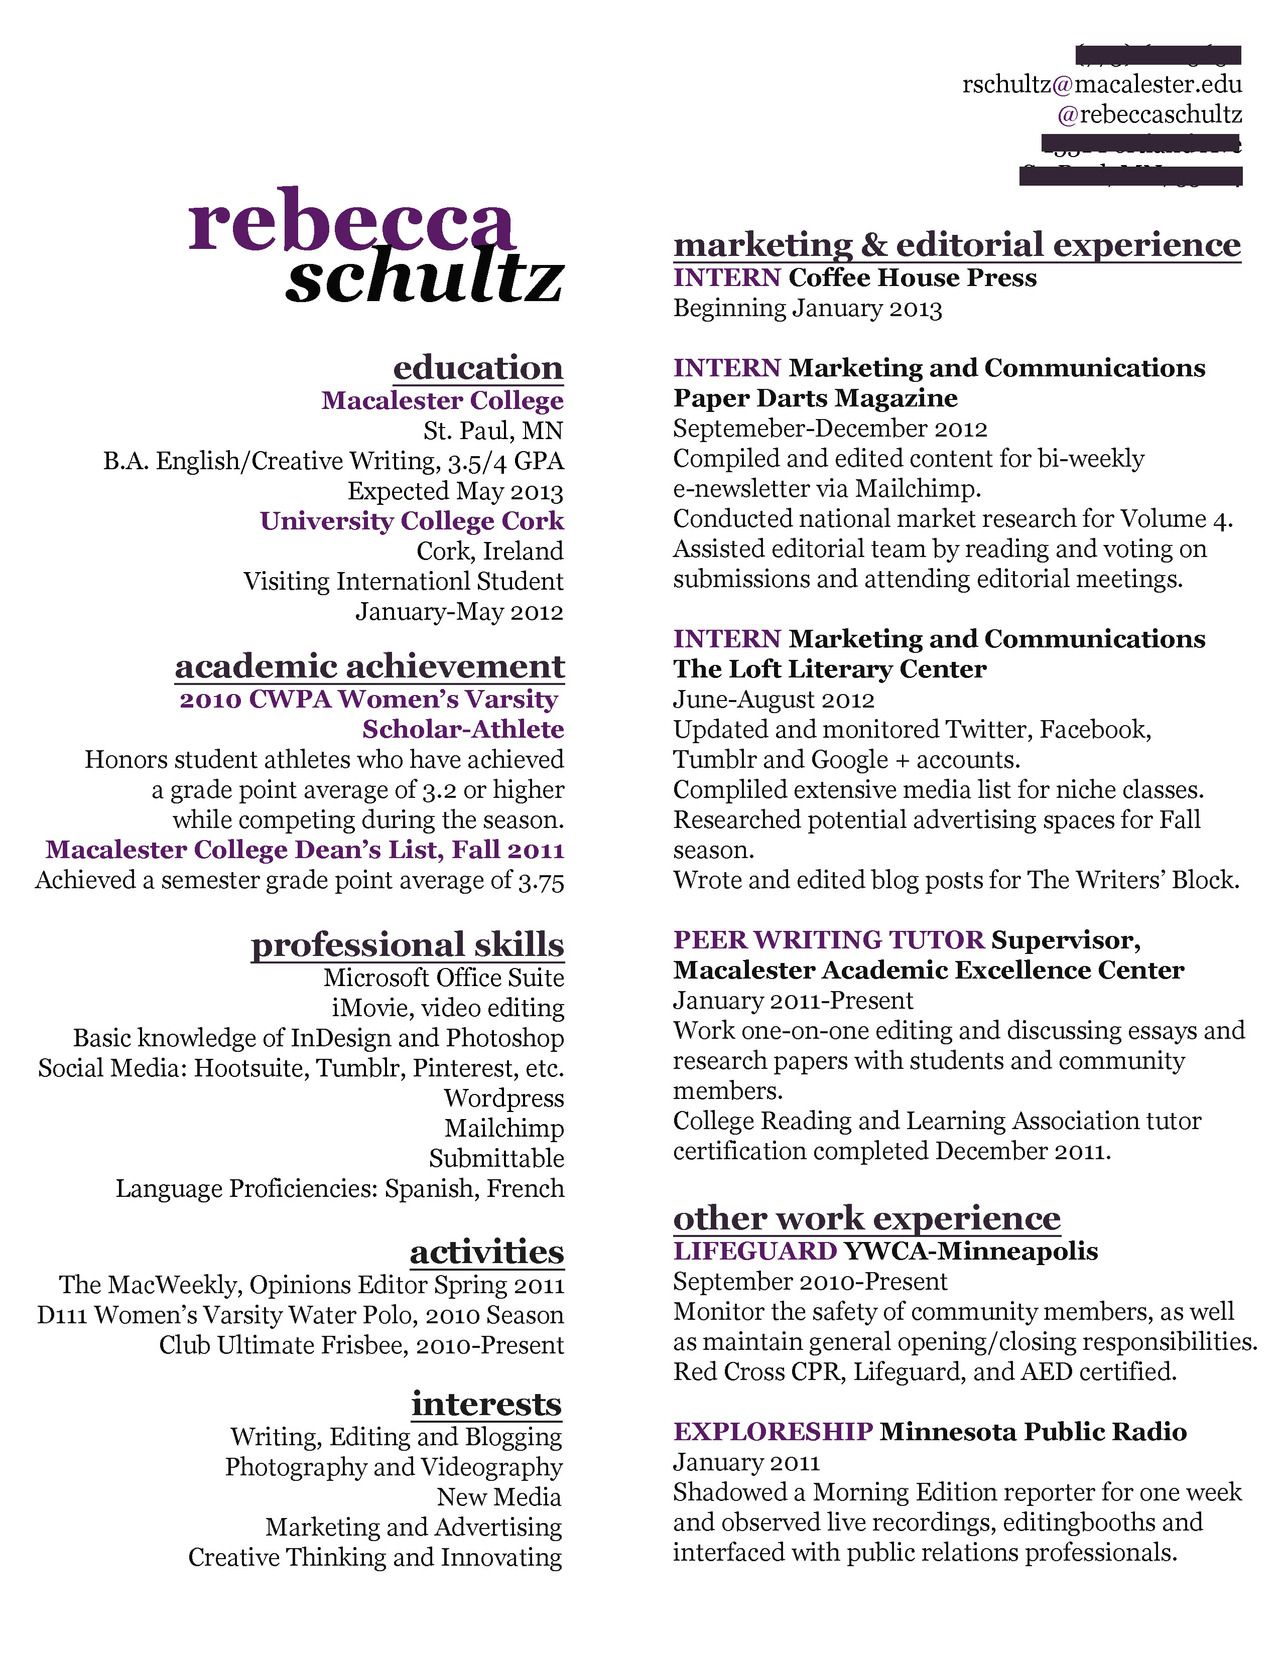 Creative resume, writer resume, entry level resume, marketing ...